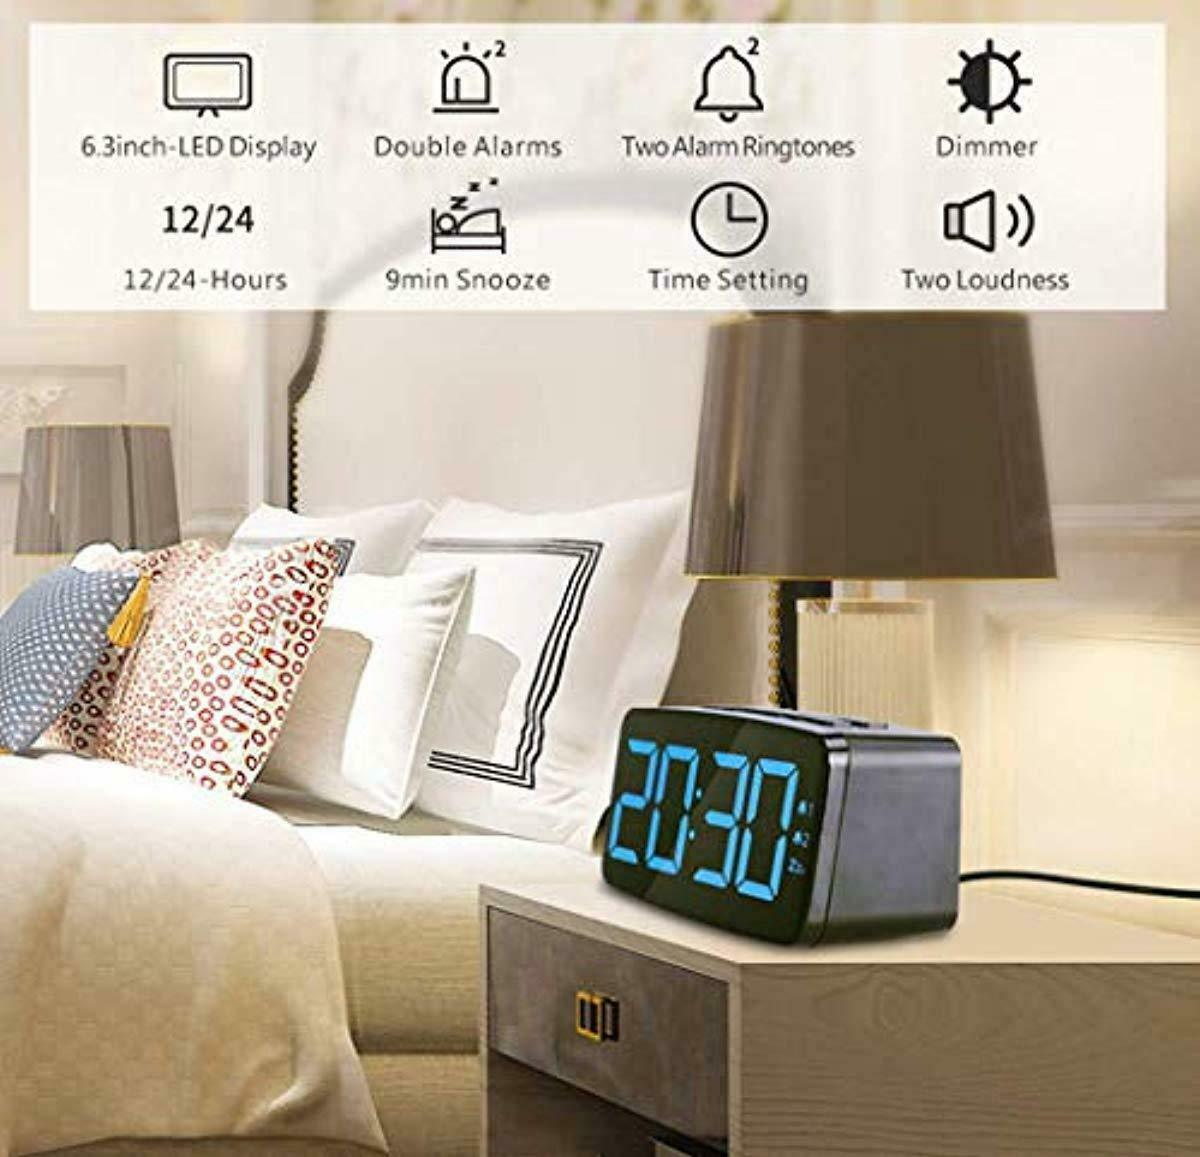 Digital Alarm Clock with USB Charger Port, Adjustable Brightness for Bedroom